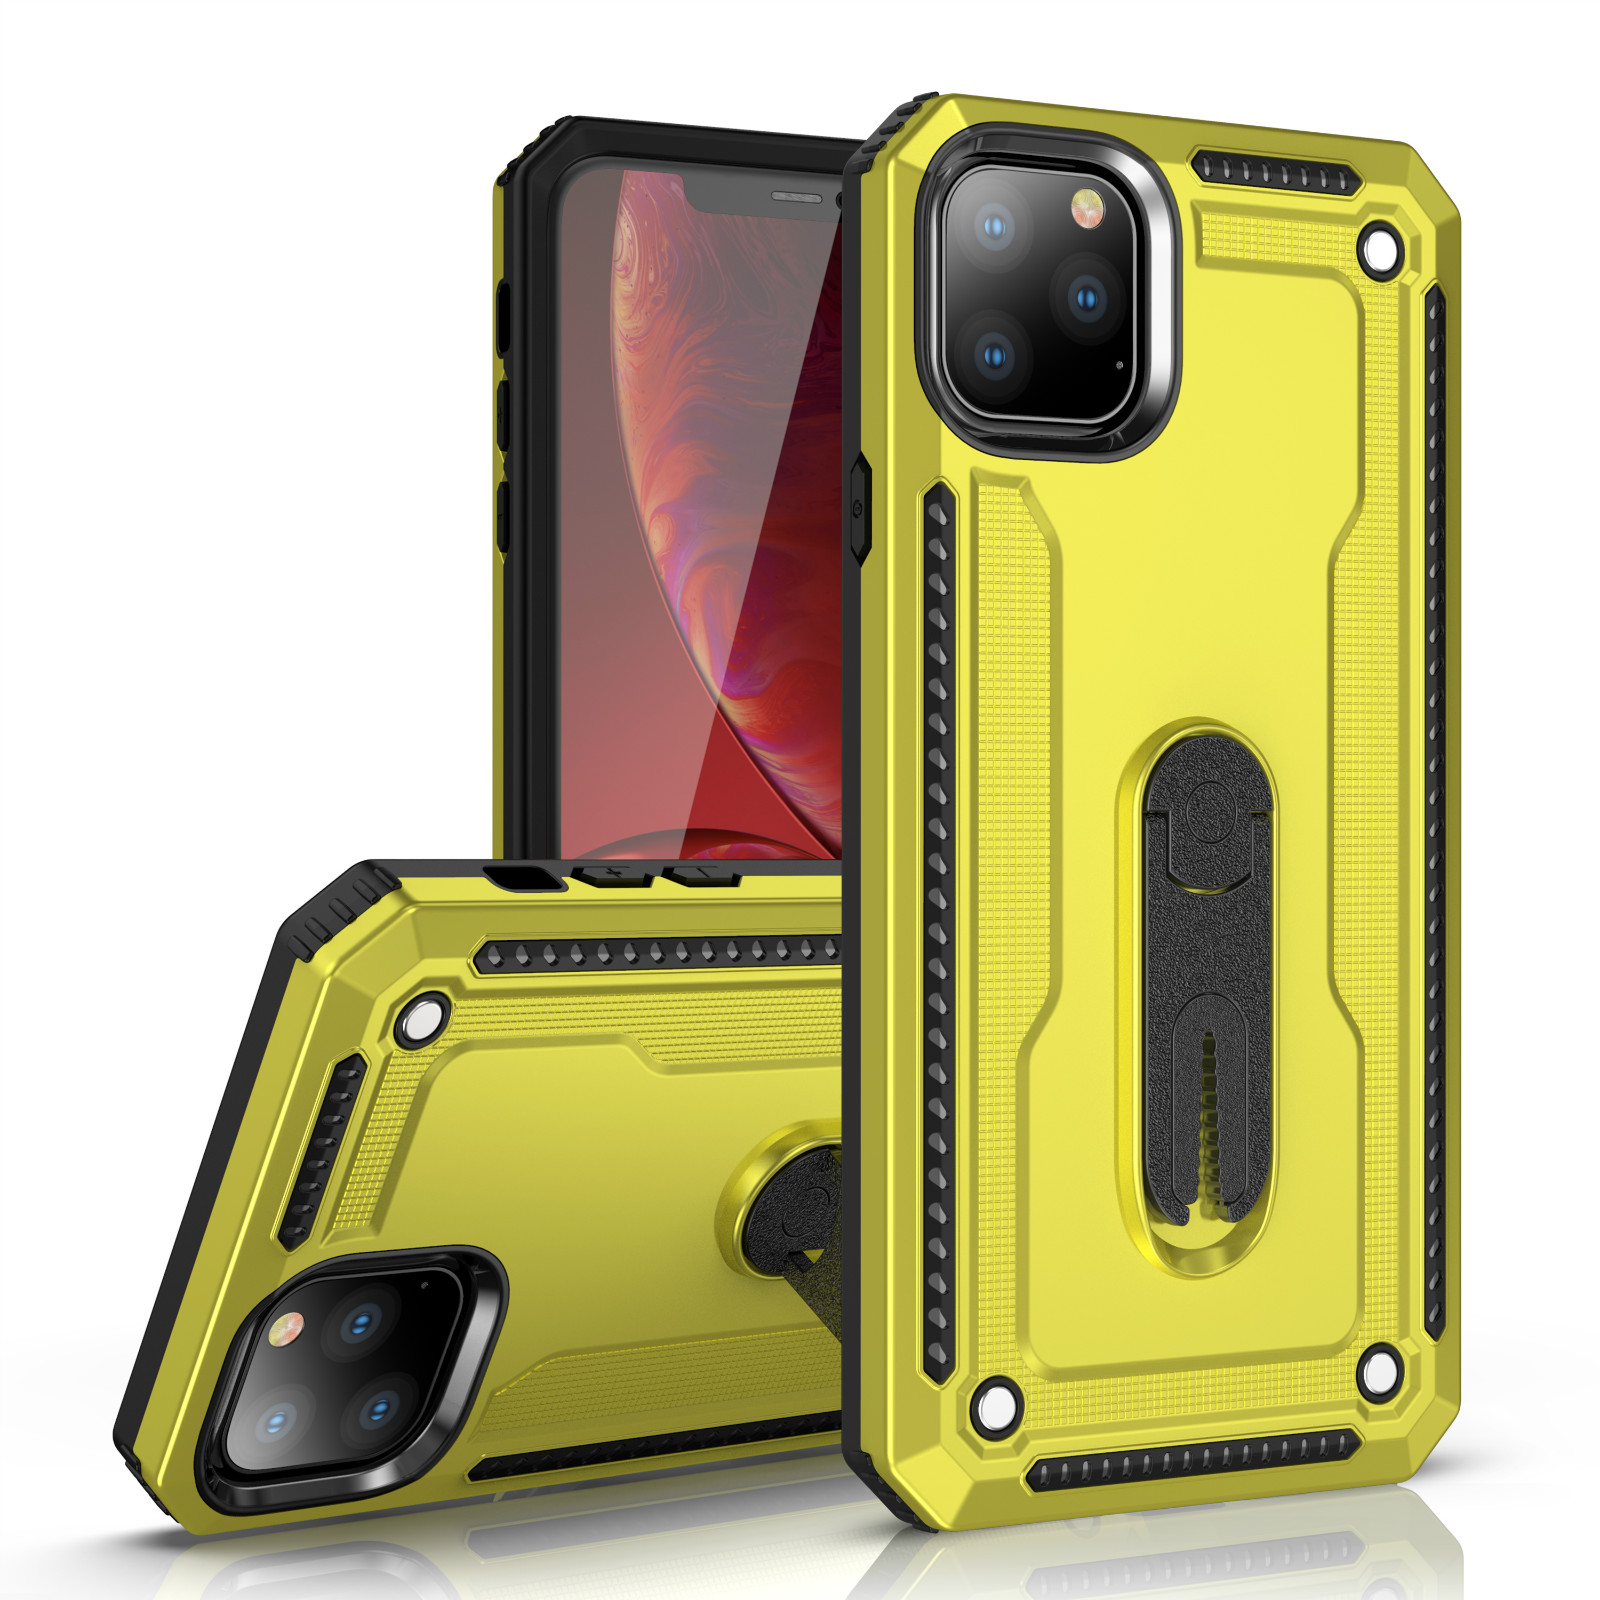 Magnetic Armor Holder <font><b>phone</b></font> <font><b>Case</b></font> for <font><b>OPPO</b></font> F5 Youth A79 A37 Neo 9 A59 <font><b>F1S</b></font> F3 A77 A71 A39 A57 F7 A7 A5S A3S A5 F9 Back Cover <font><b>Case</b></font> image